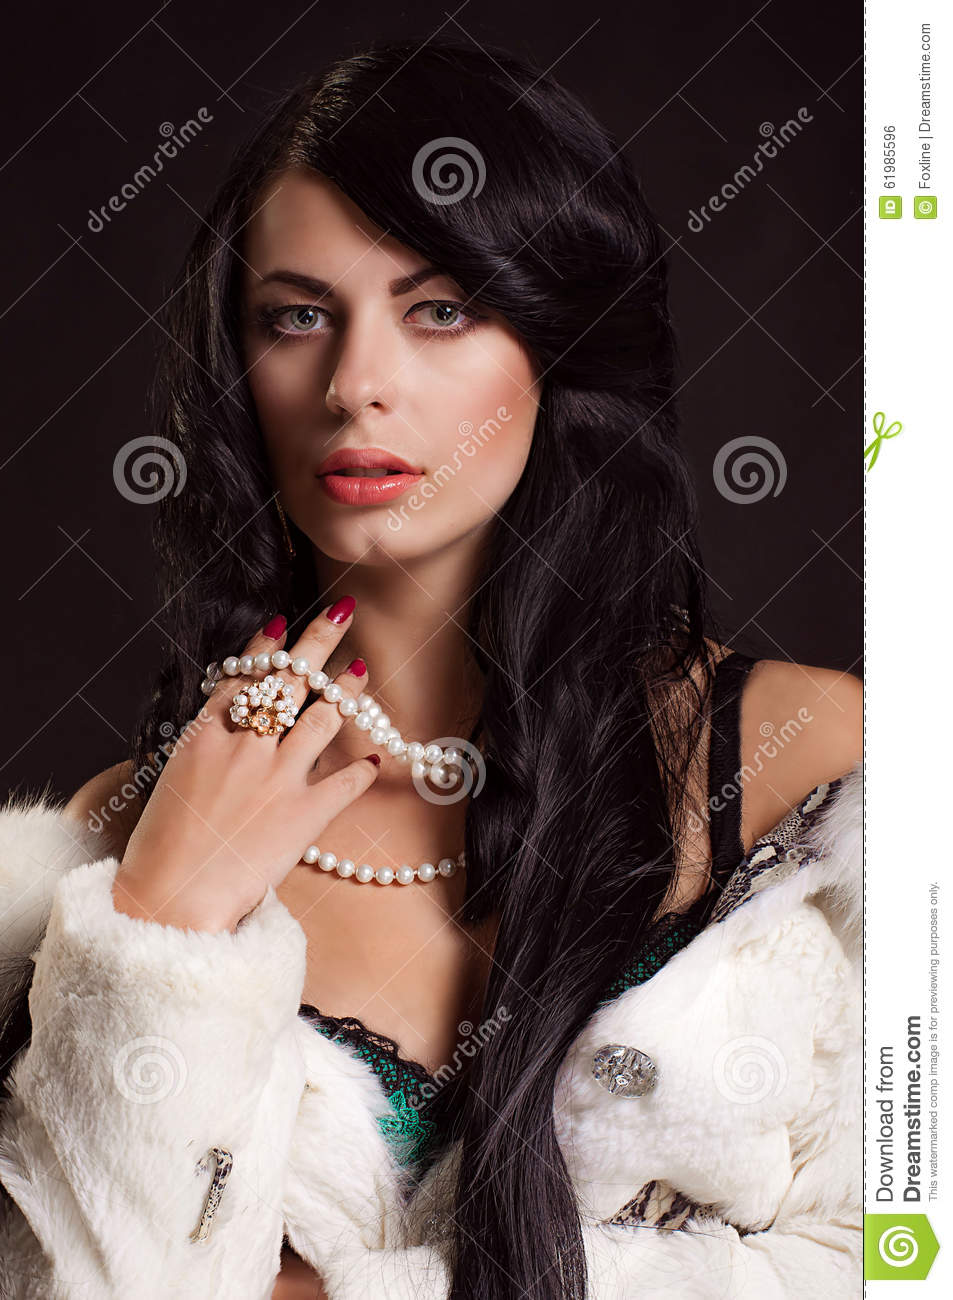 Beautiful Girl With Dark Hair In A White Fur Coat Stock Photo